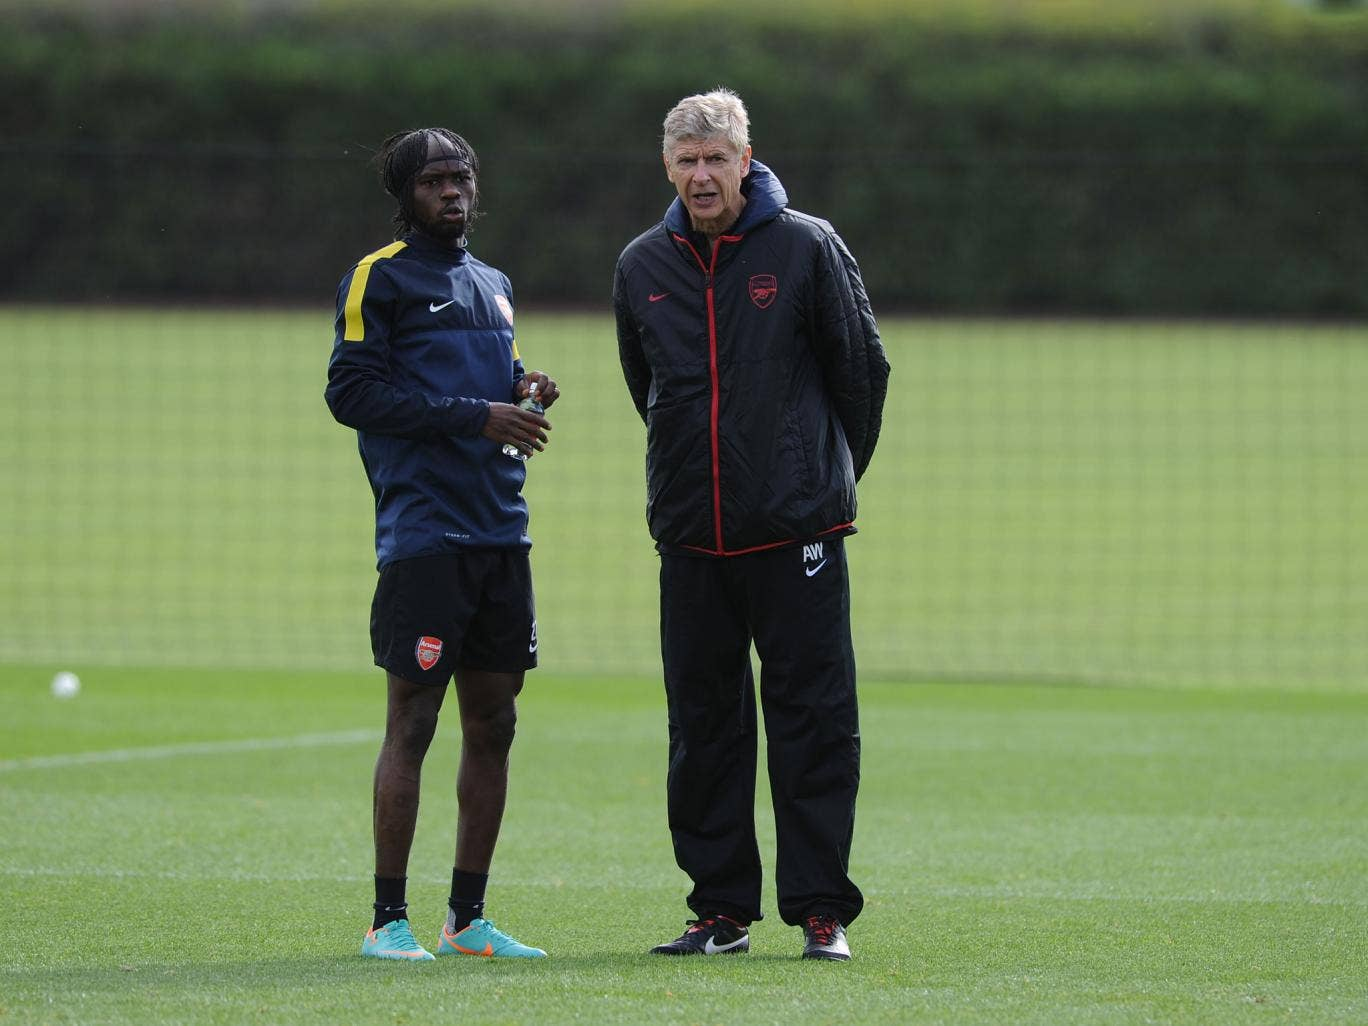 Gervinho has criticised his former manager Arsene Wenger over his lack of playing time at Arsenal